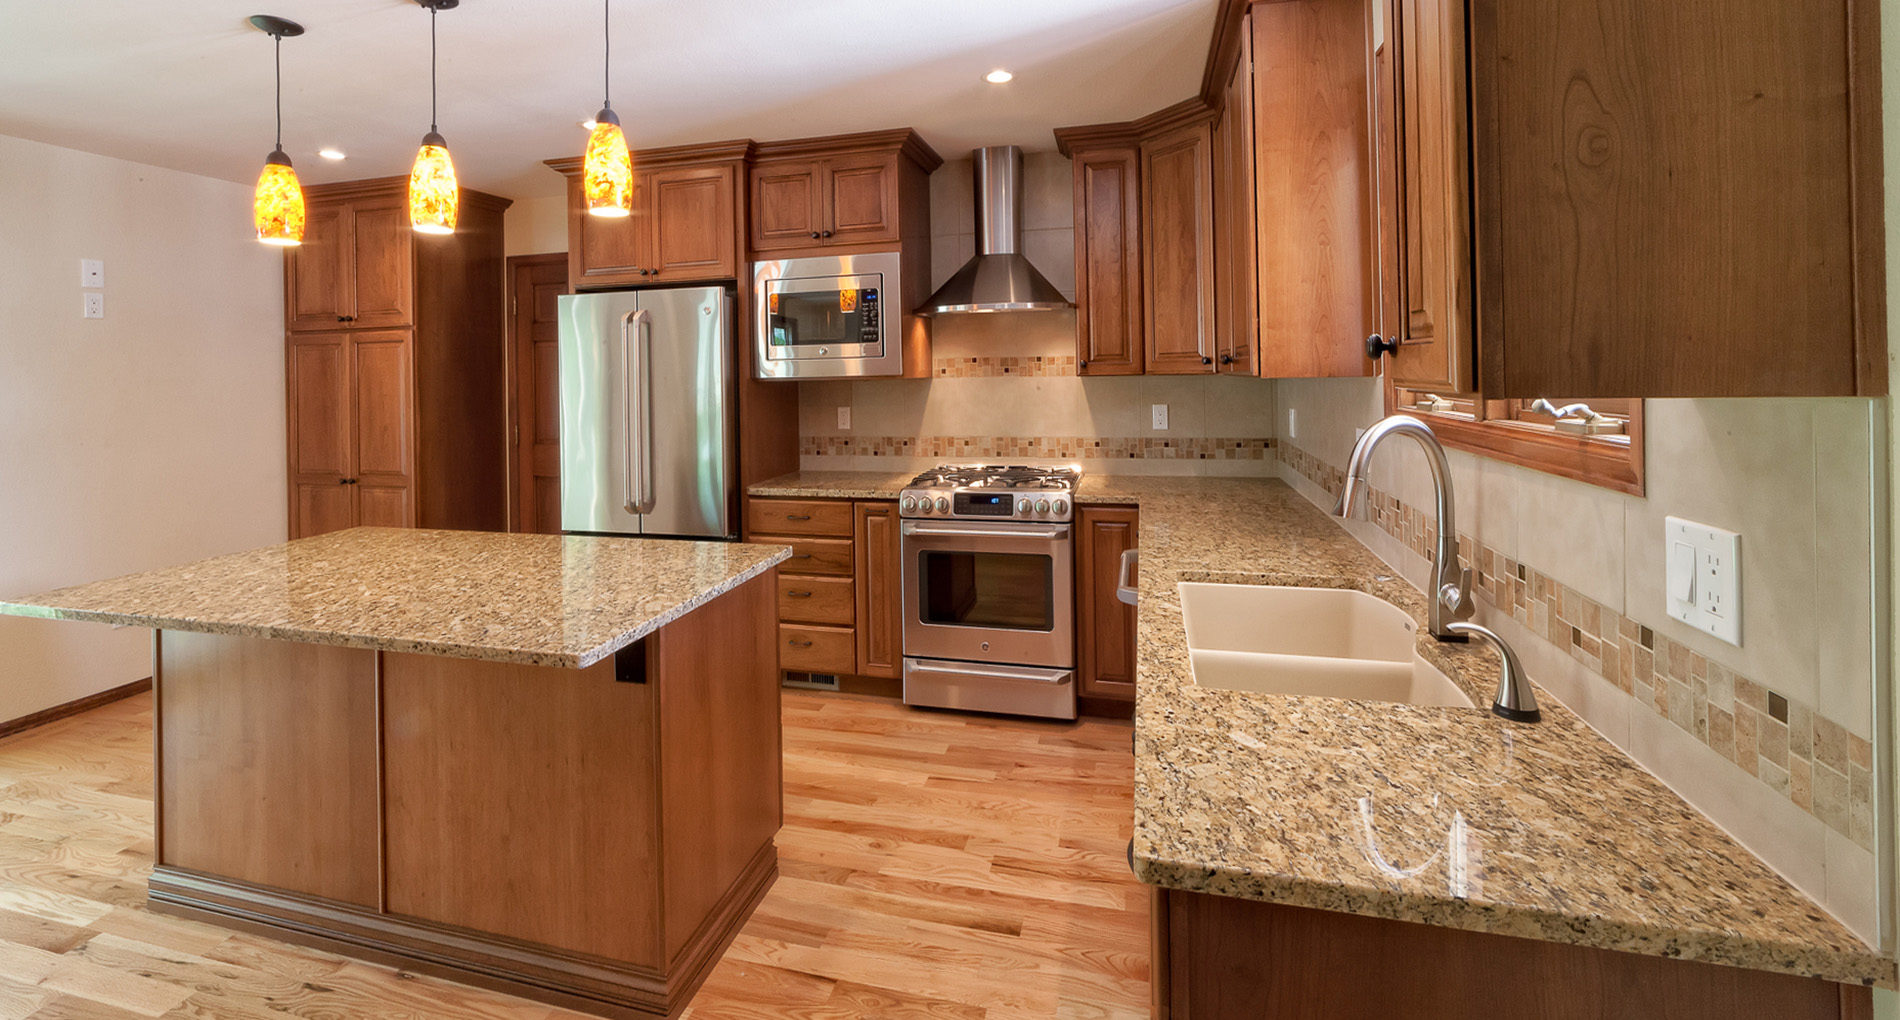 Home Remodeling Biz with 1st year sales of $600K+